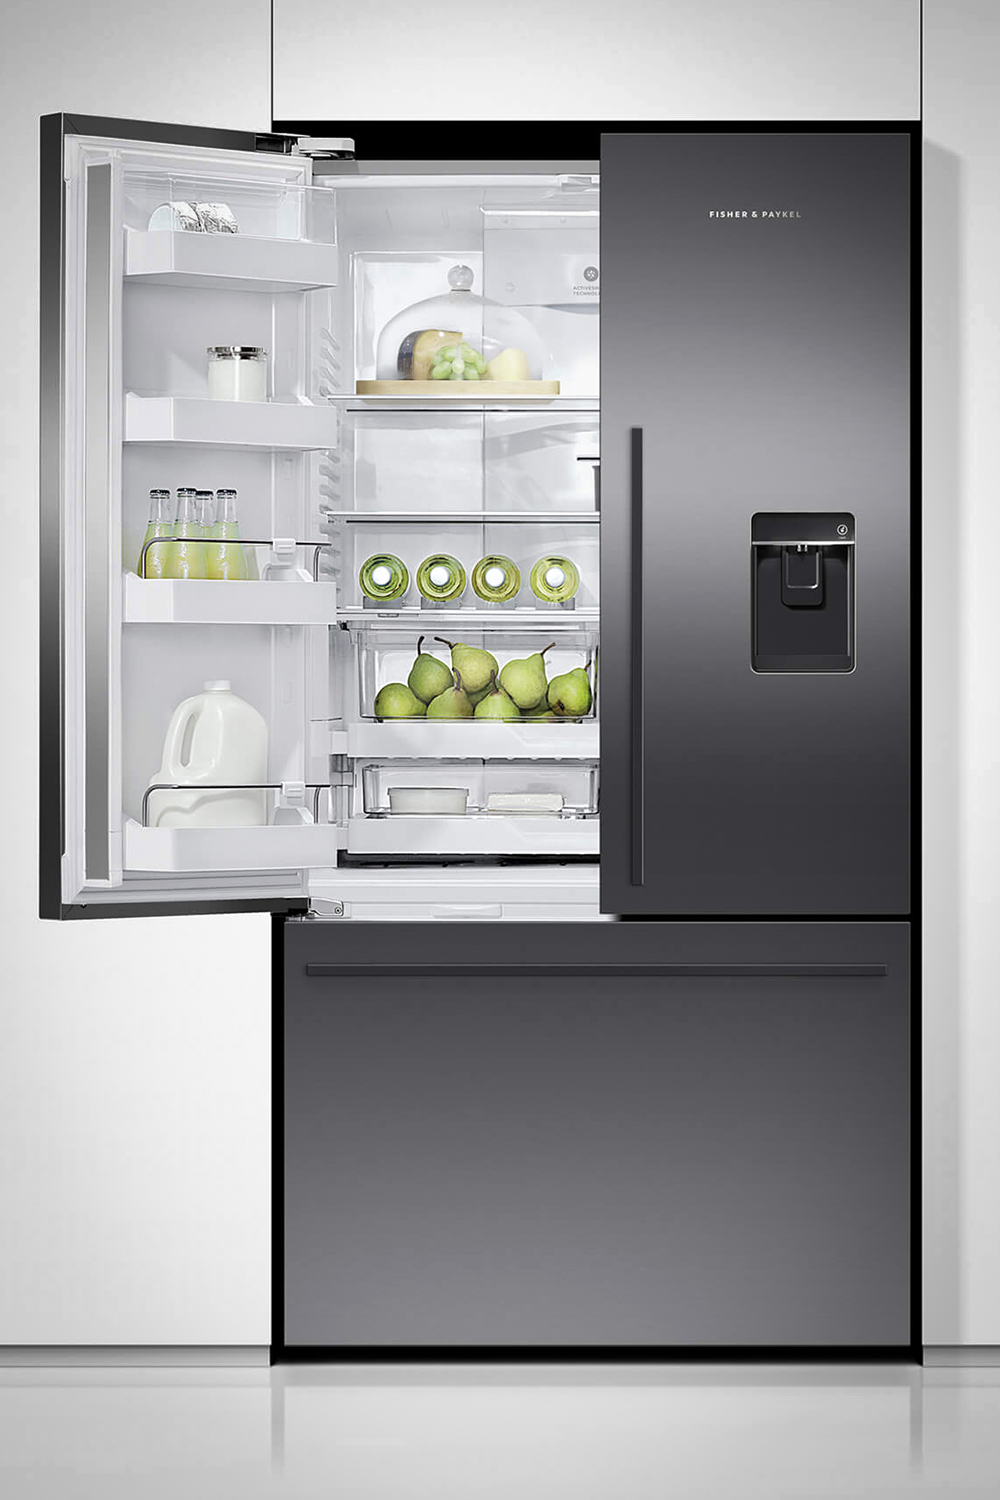 Fisher & Paykel Fridge Freezer model RF610ADUB5 with open left door and food and drinks on the shelves.